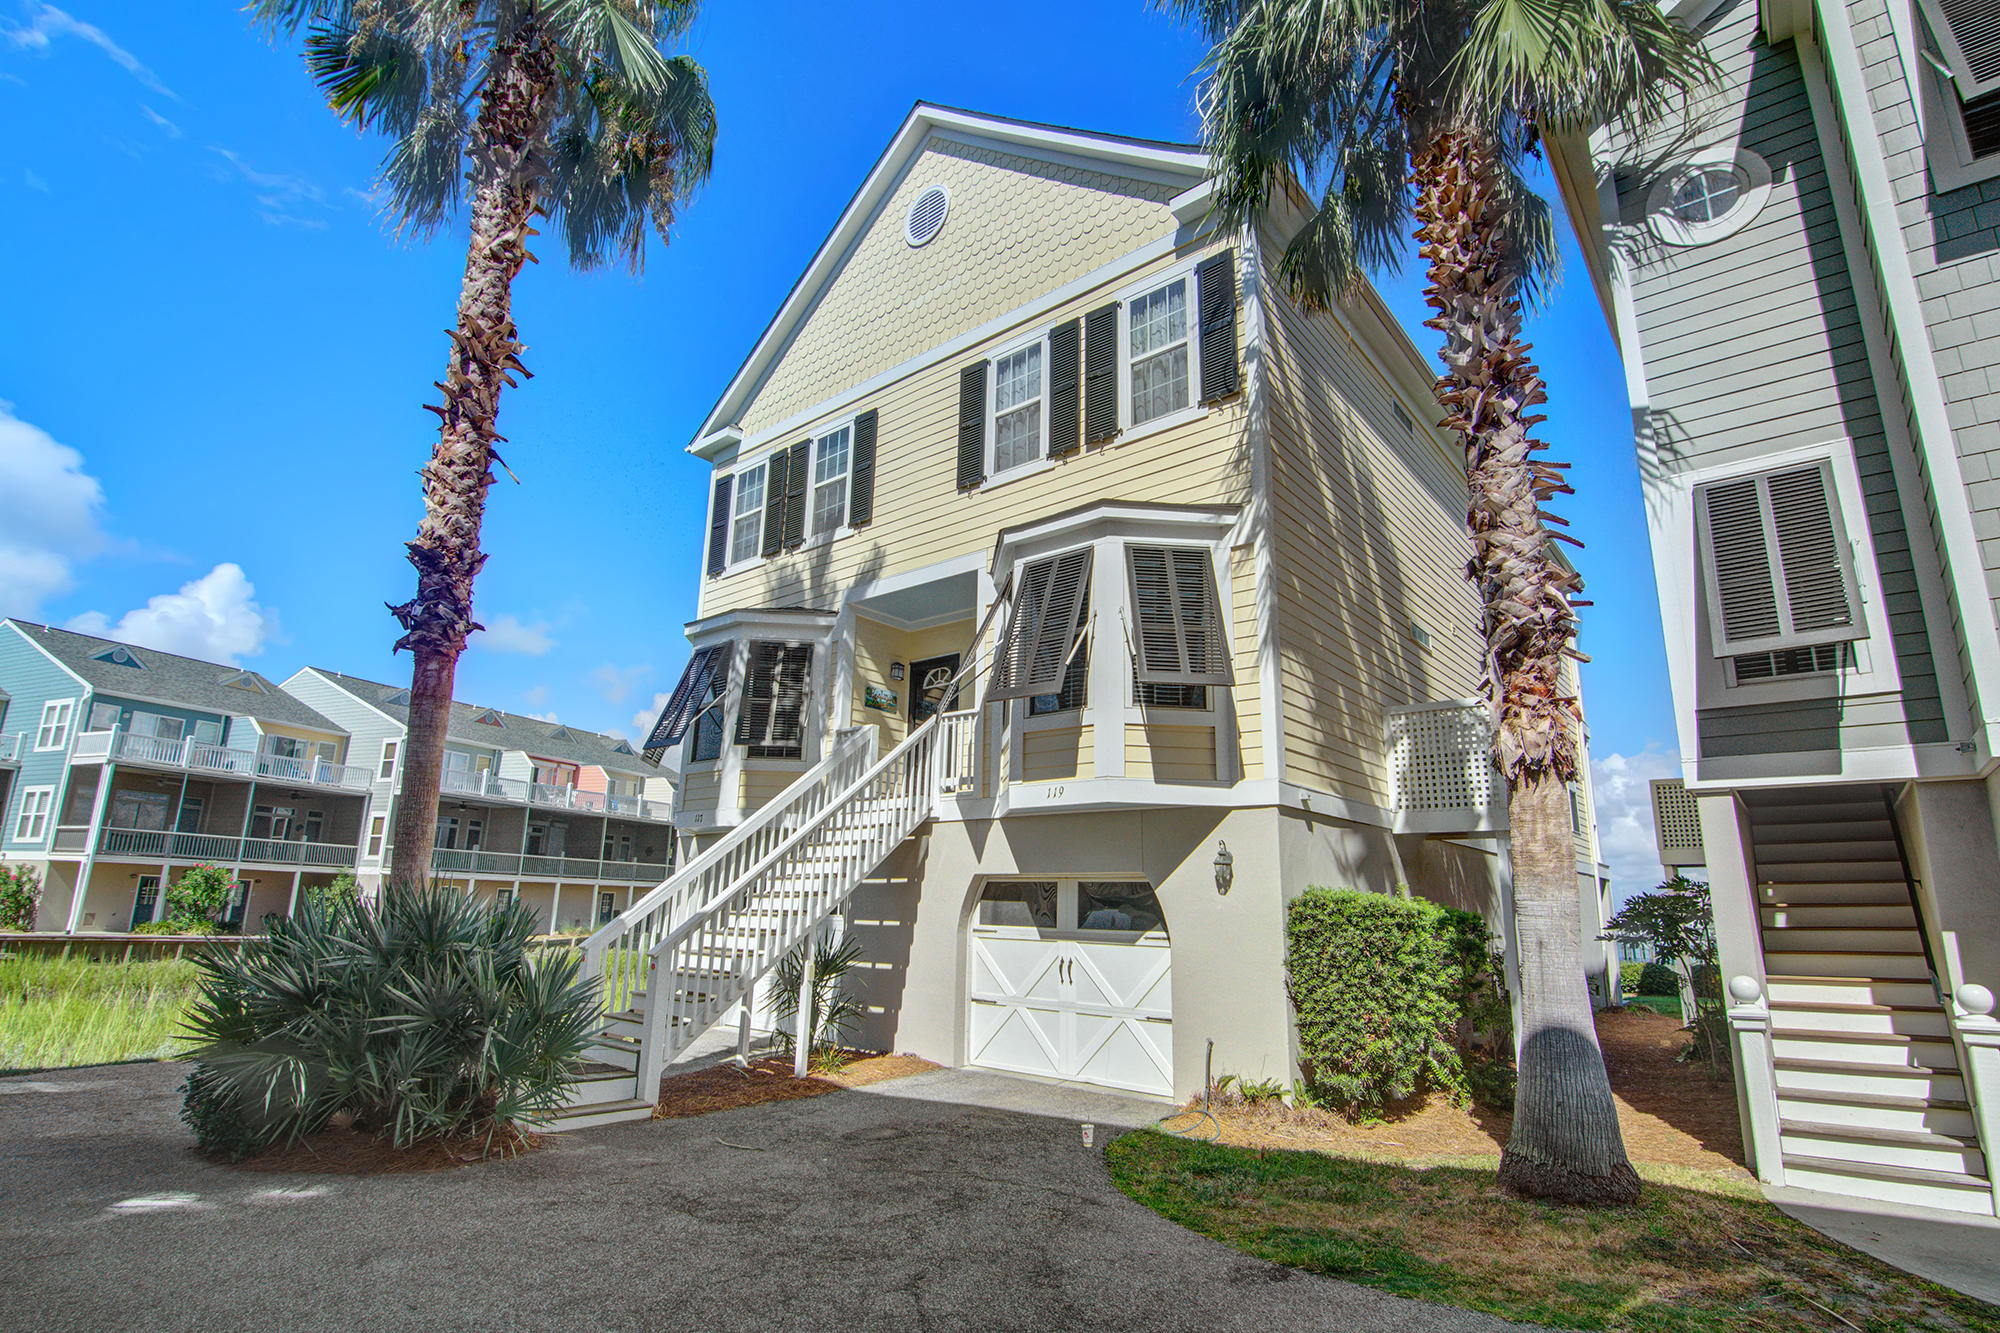 Waters Edge Homes For Sale - 119 2nd, Folly Beach, SC - 32